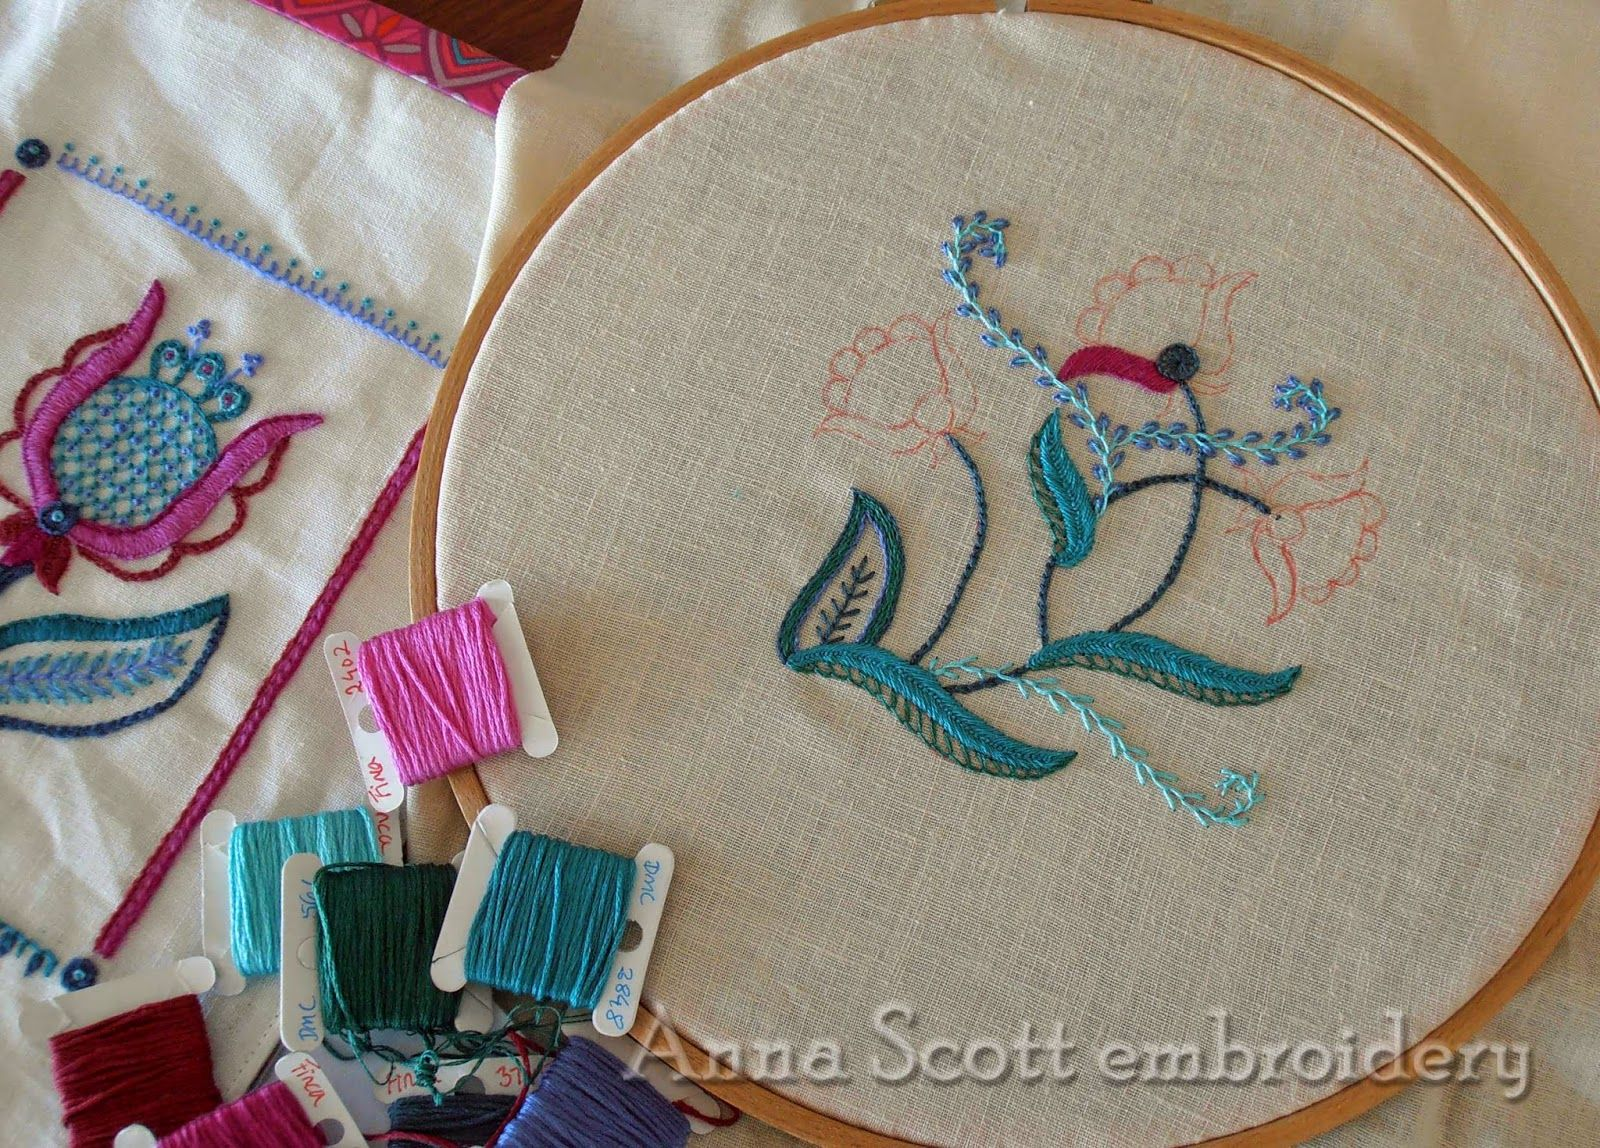 Simple stitches #embroidery